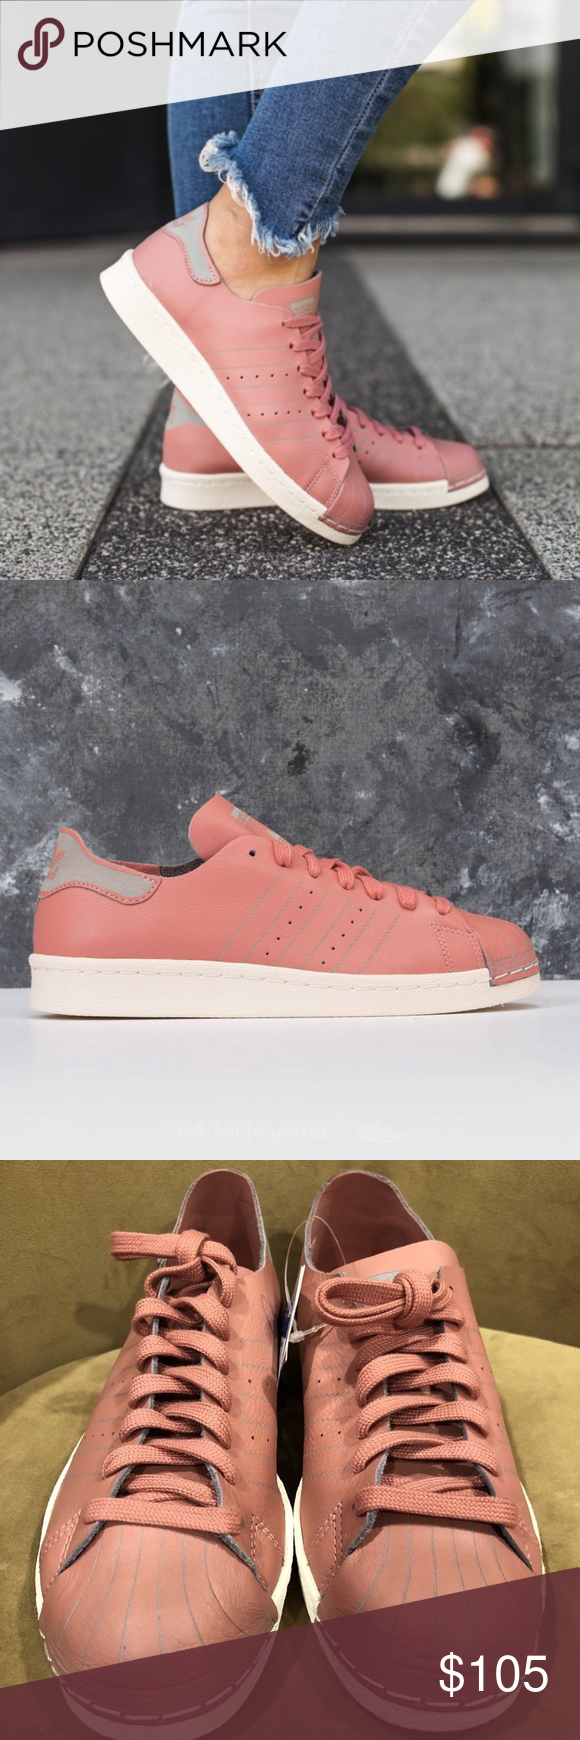 2b3ea7e914ef Women s 80 s Superstars Deacon ( Size 8) -Brand new in box -100% authentic  -Excellent condition -Ash Pink White Gray color way -Size 8 women -Ships  doubled ...